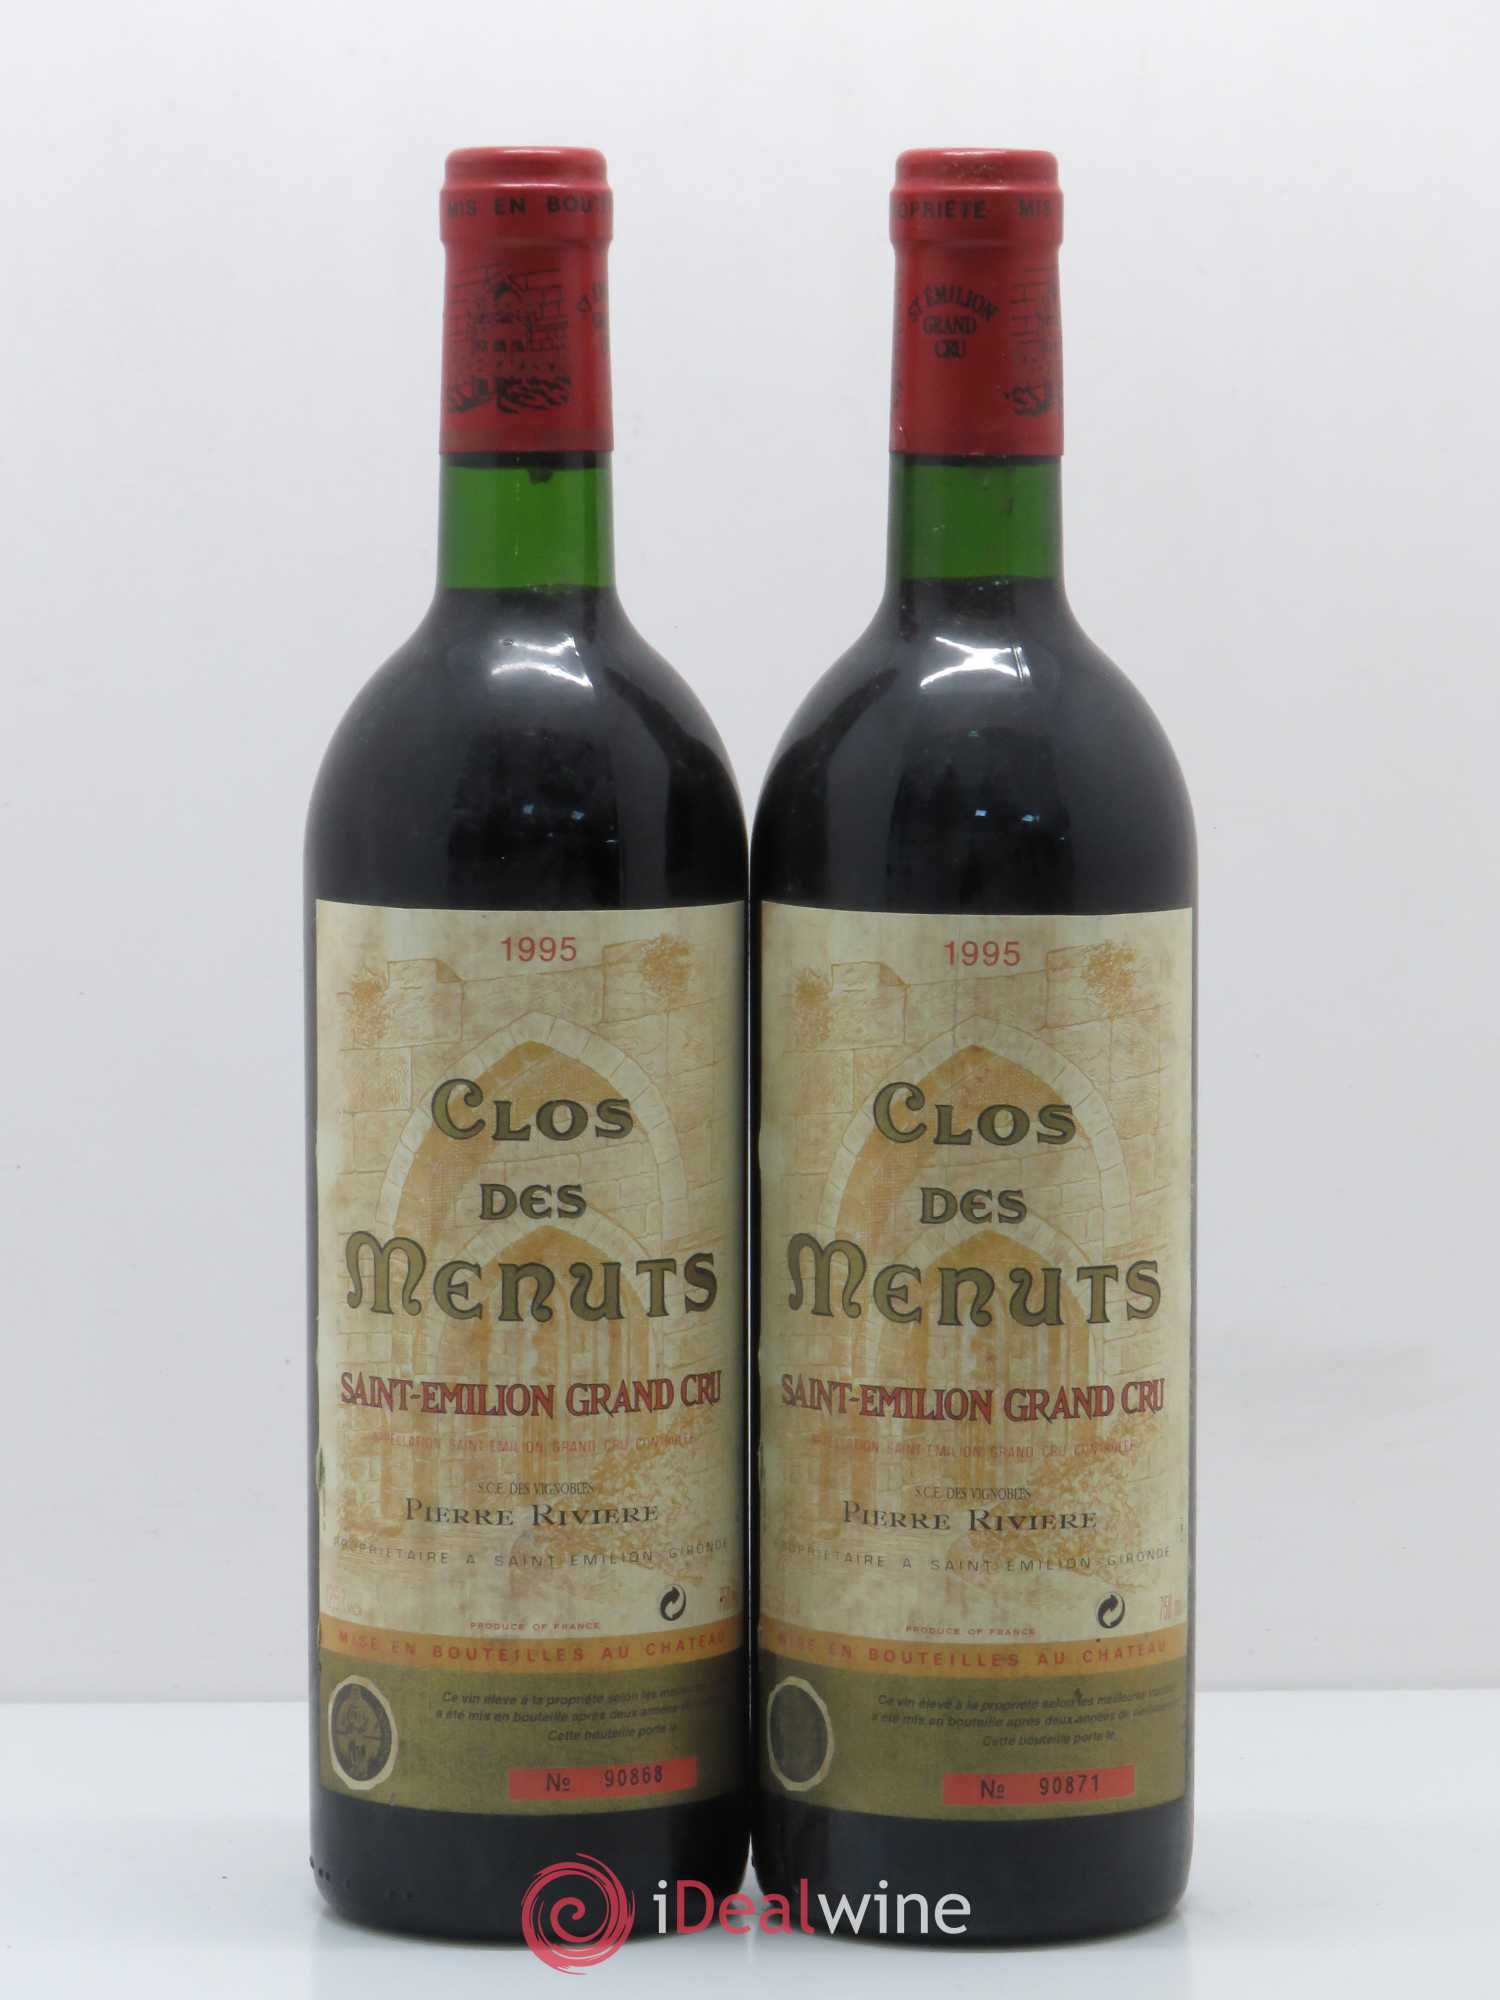 Saint-Émilion Grand Cru Clos des Menuts (no reserve) 1995 - Lot of 2 Bottles